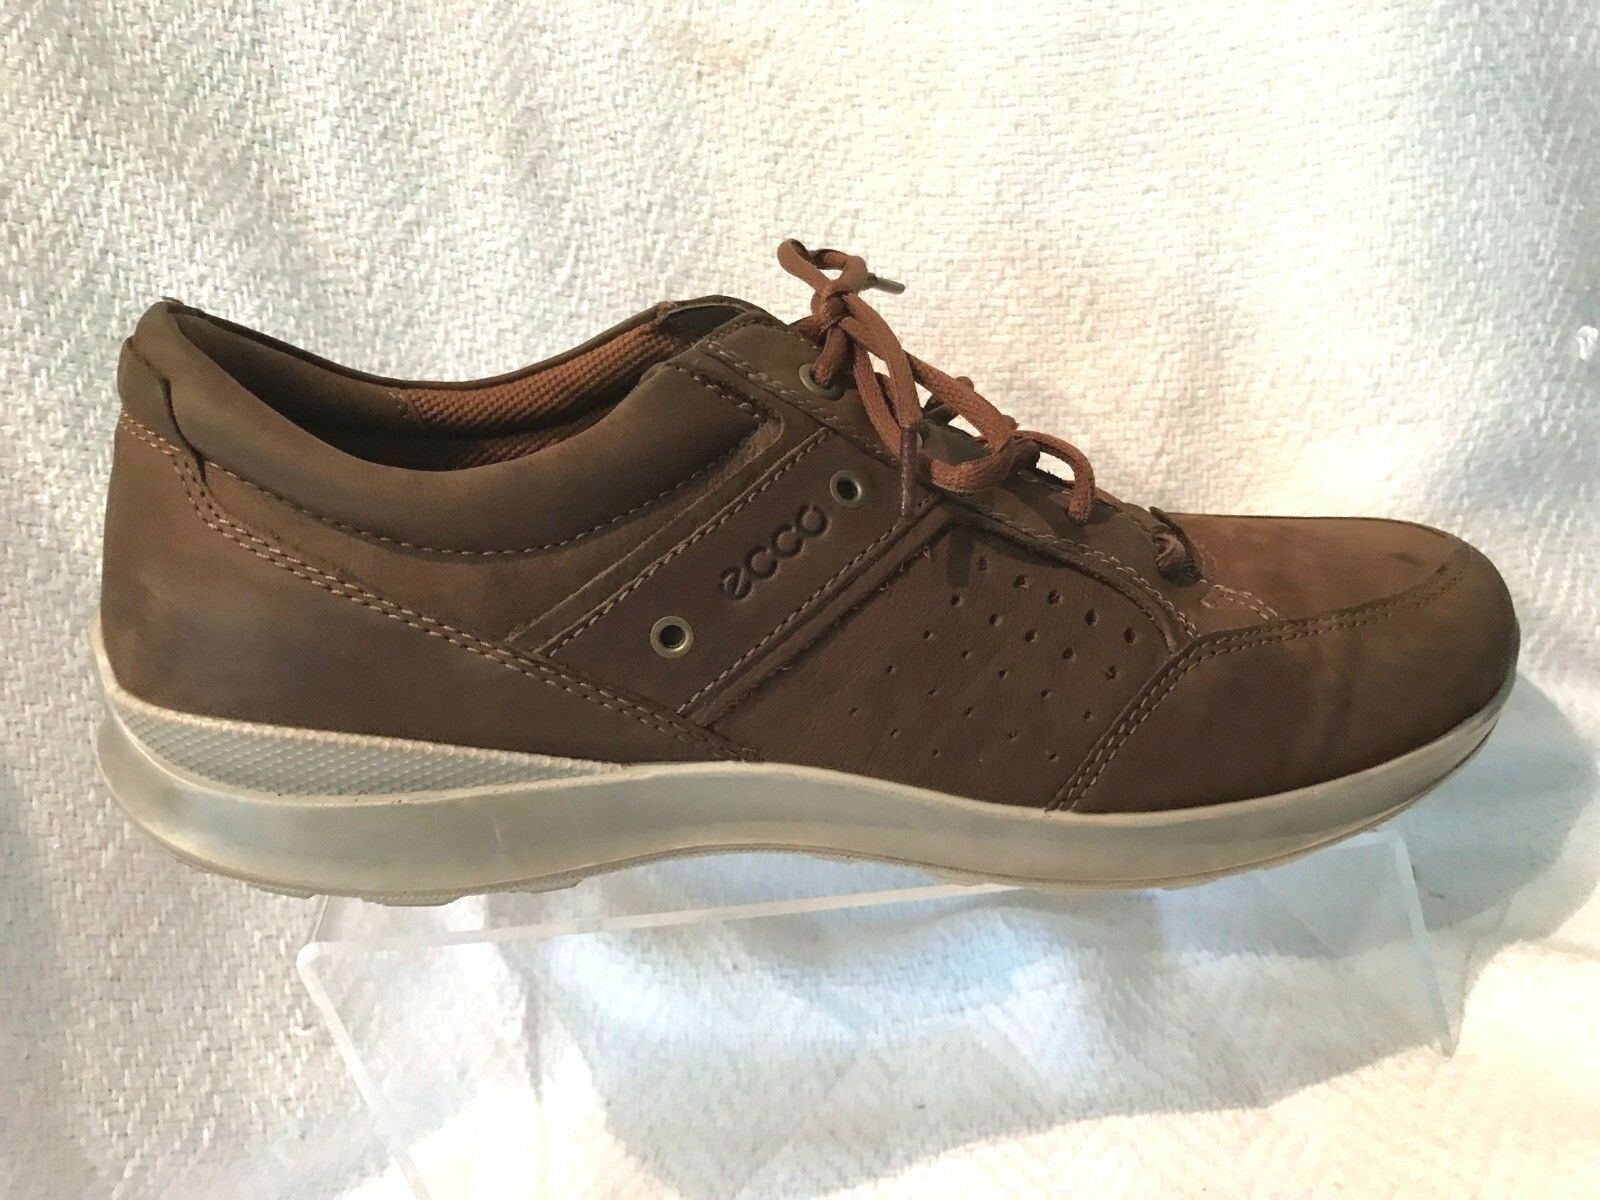 Ecco Brown Suede Leather Casual Comfort Lace Up Derby Loafers Mens 46 US 12-12.5